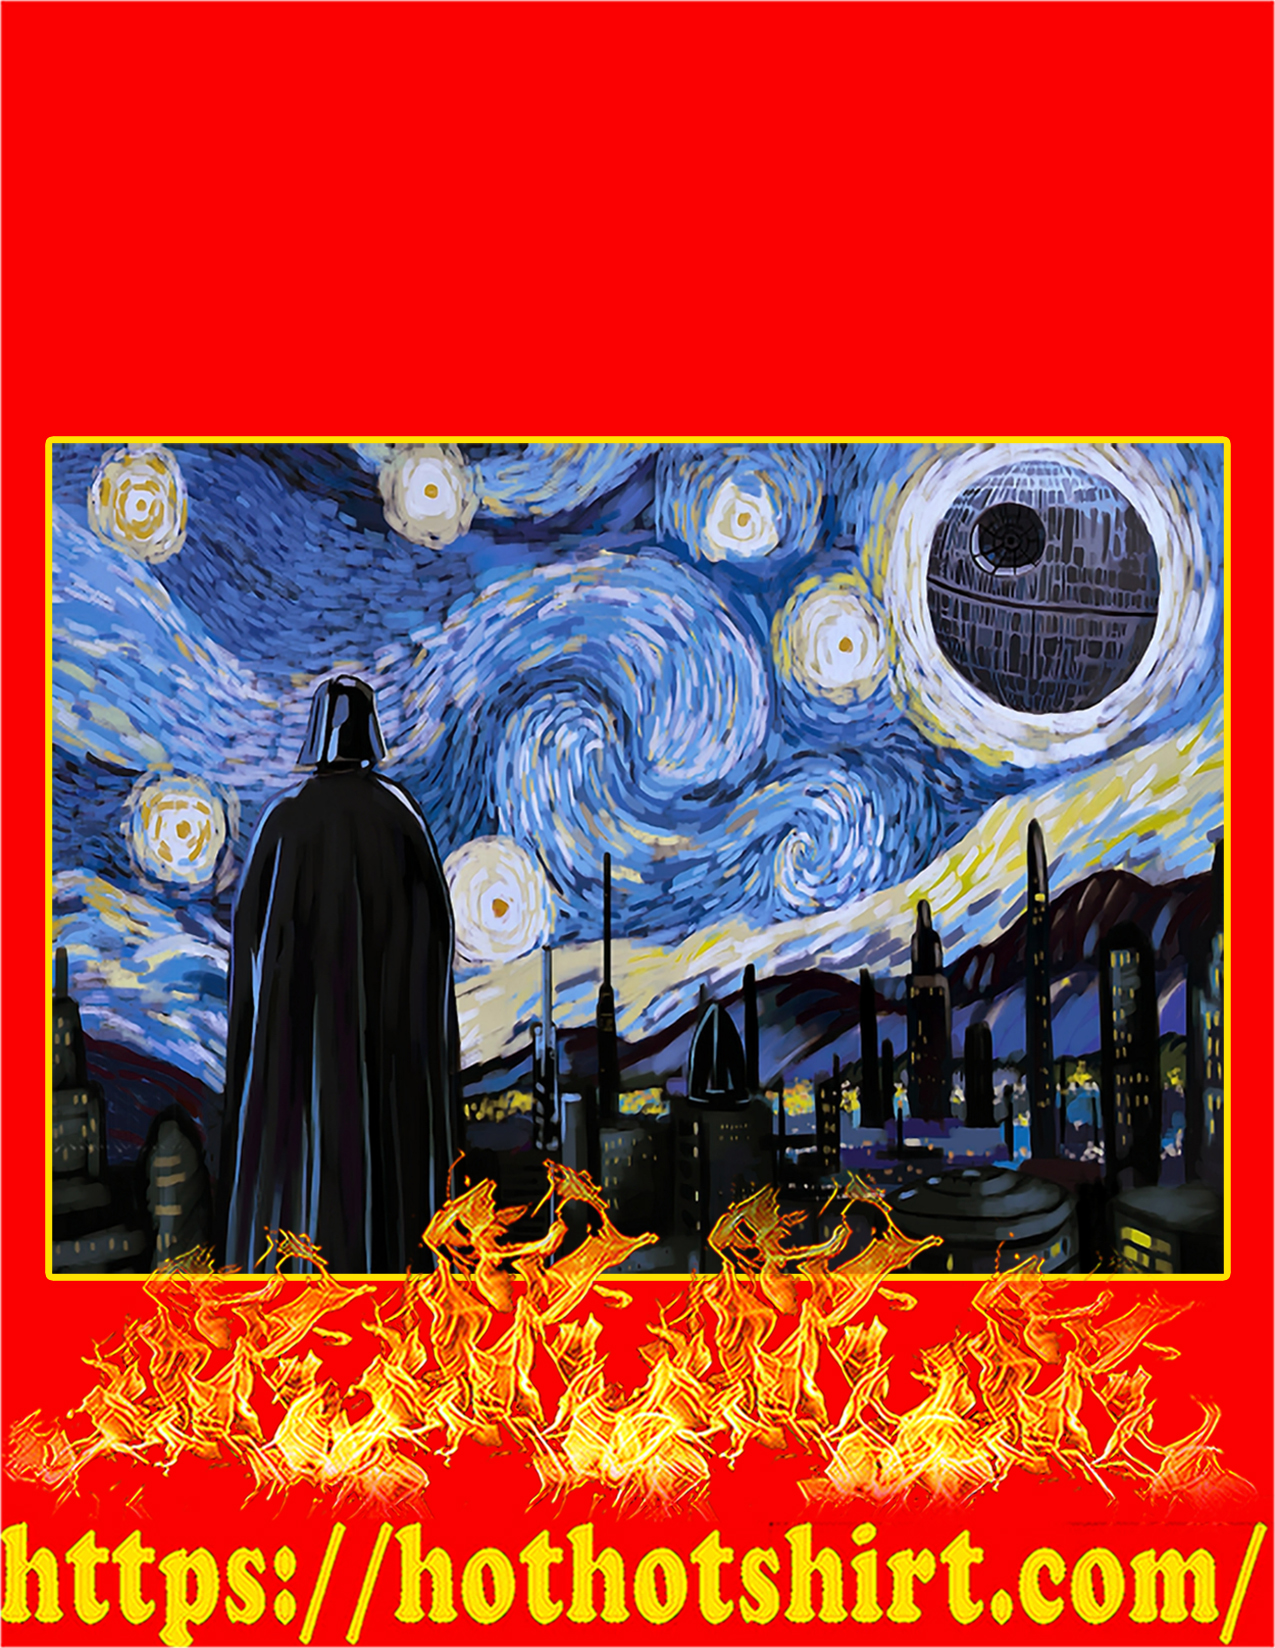 Star wars starry night poster - A2